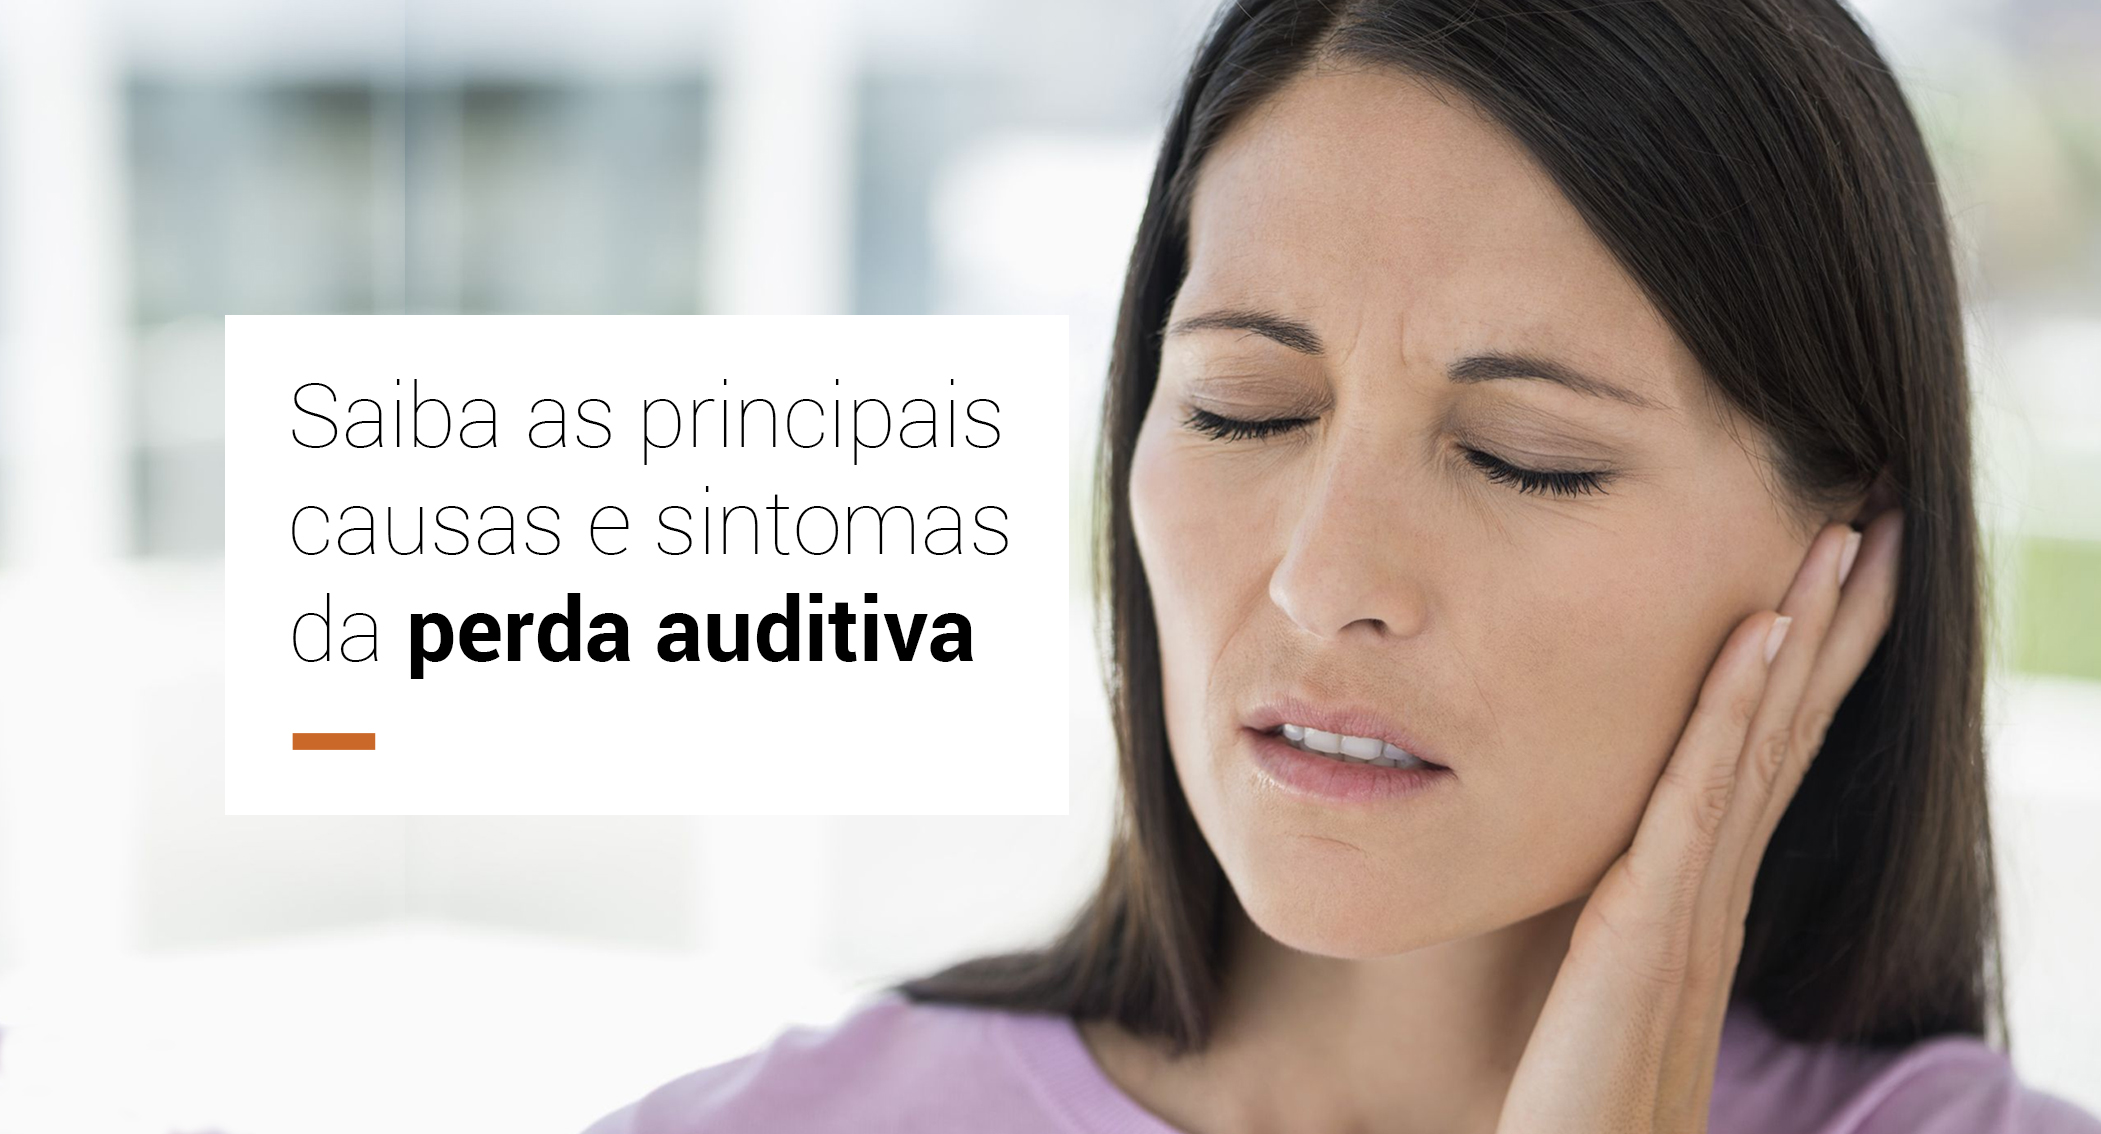 Saiba as principais causas e sintomas da perda auditiva